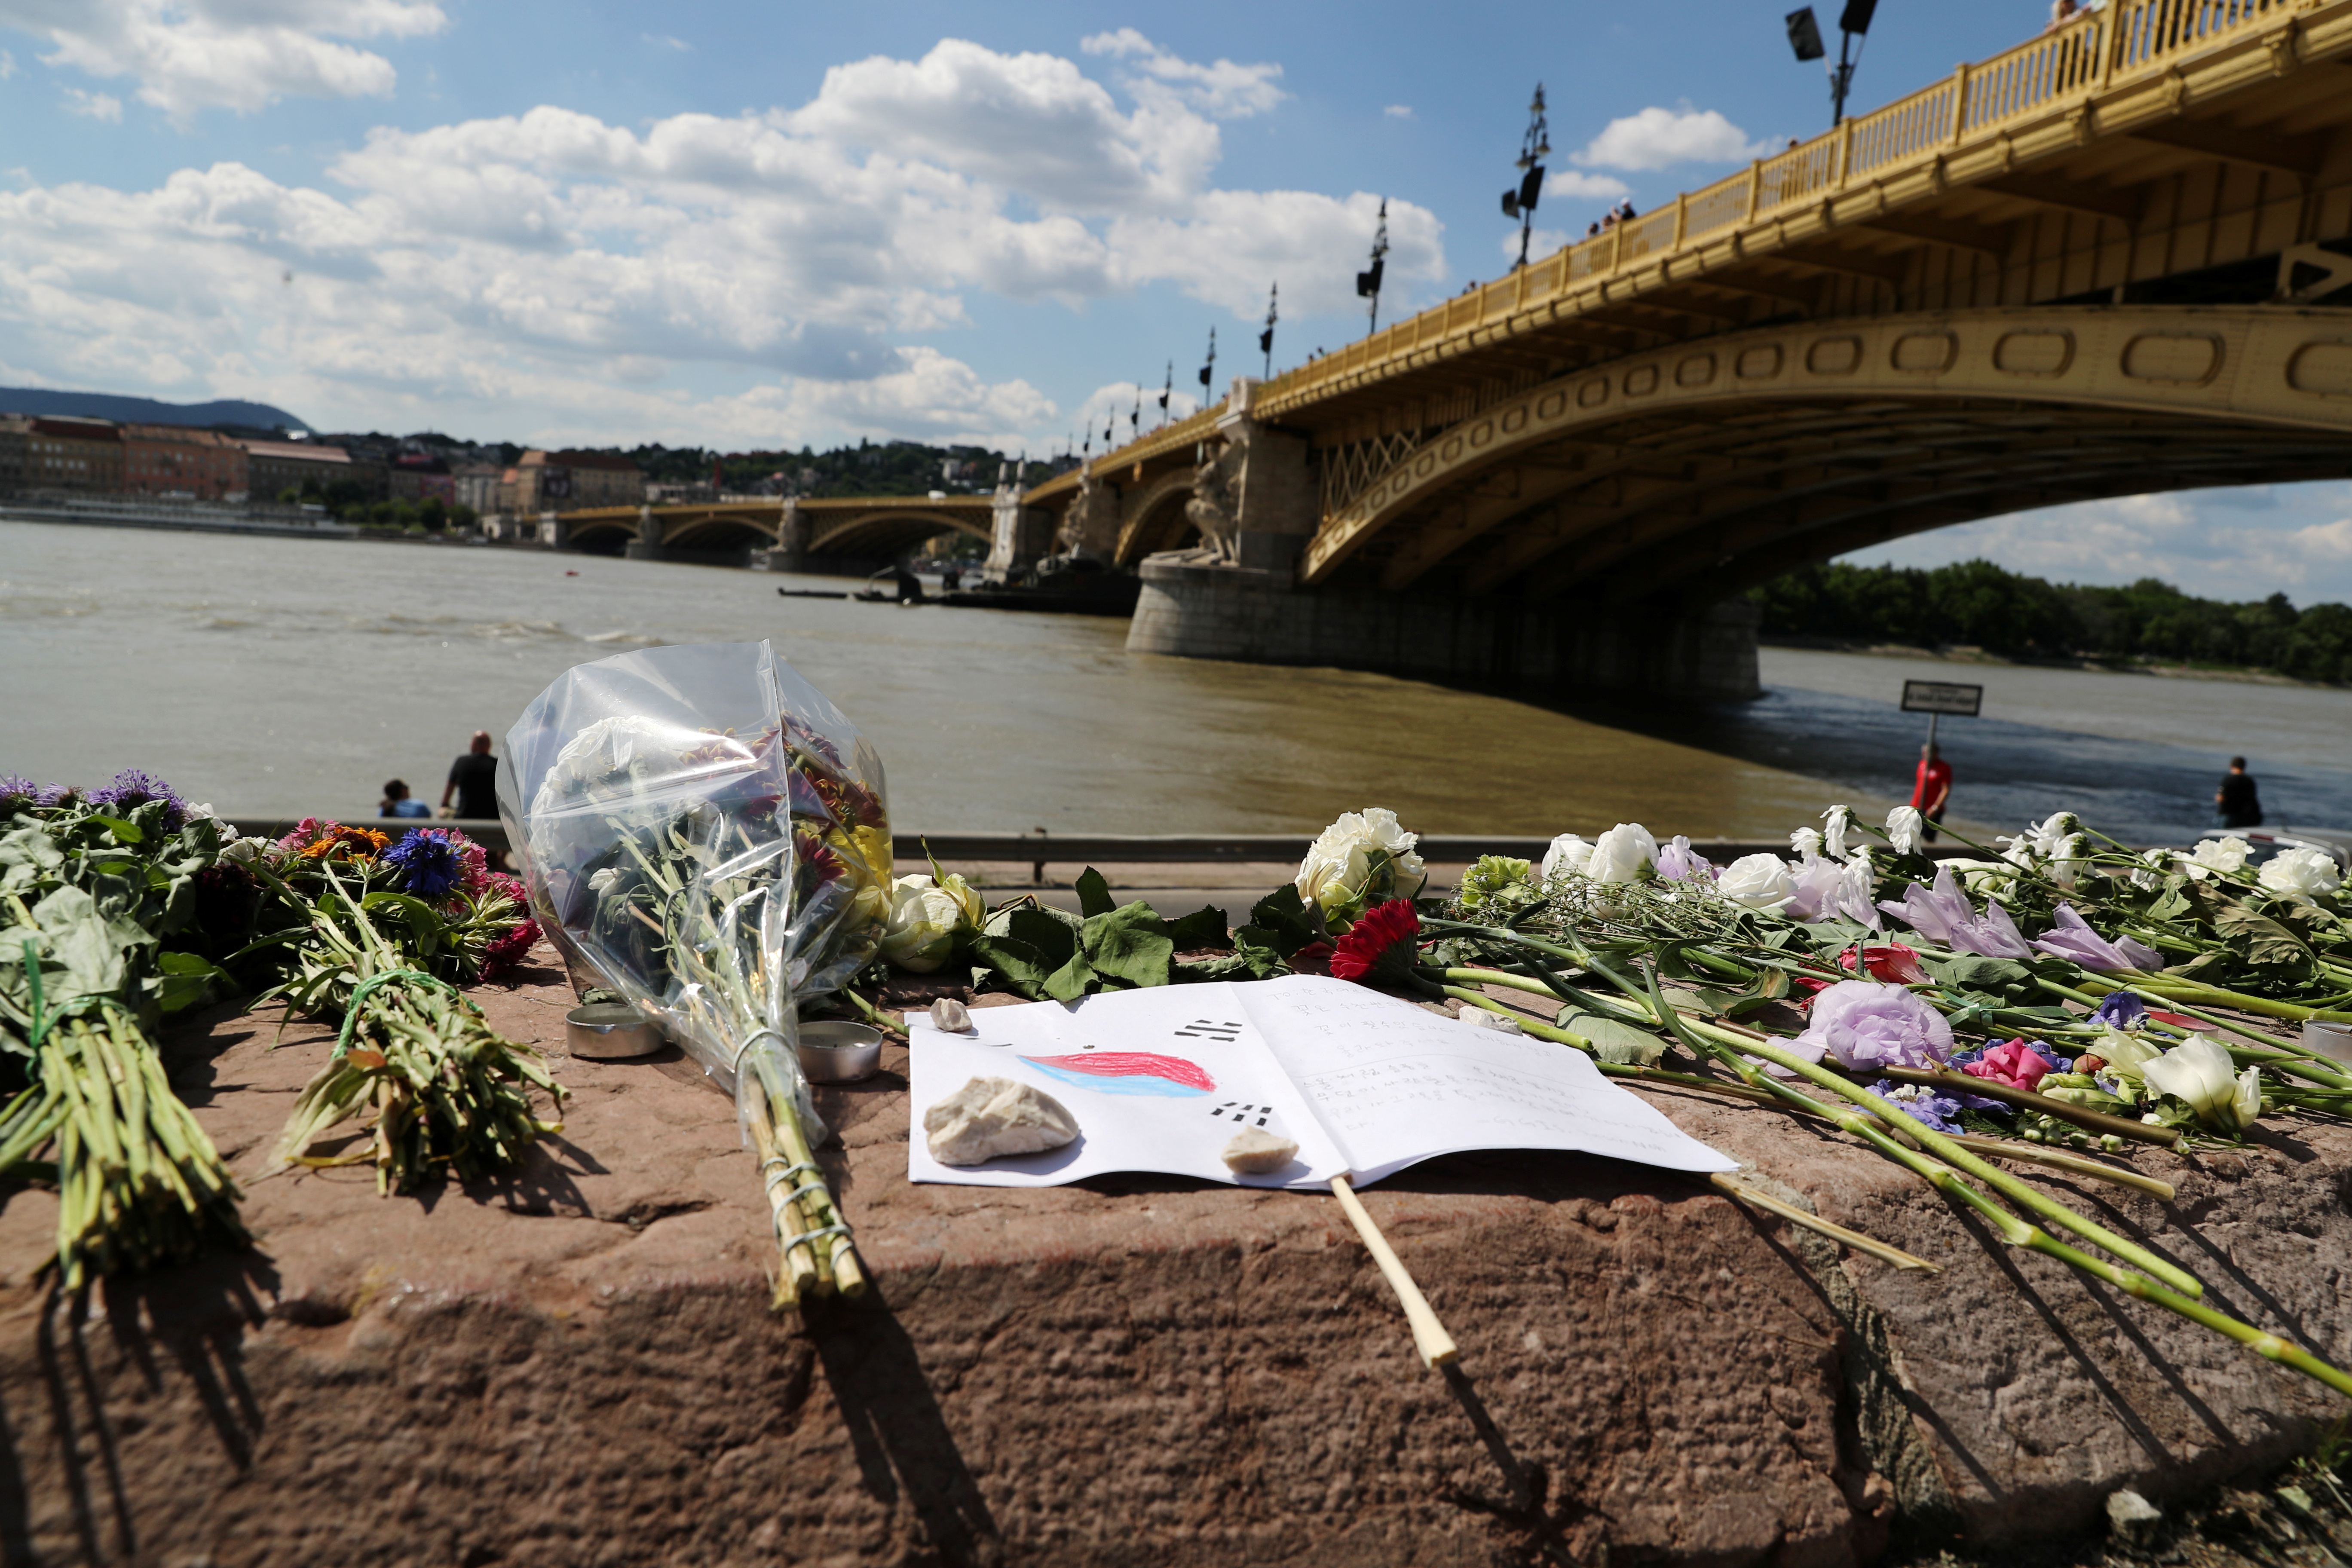 Flowers are placed next to the Margaret bridge in respect for the victims of a boating accident on the Danube river, in Budapest, Hungary, June 1, 2019.